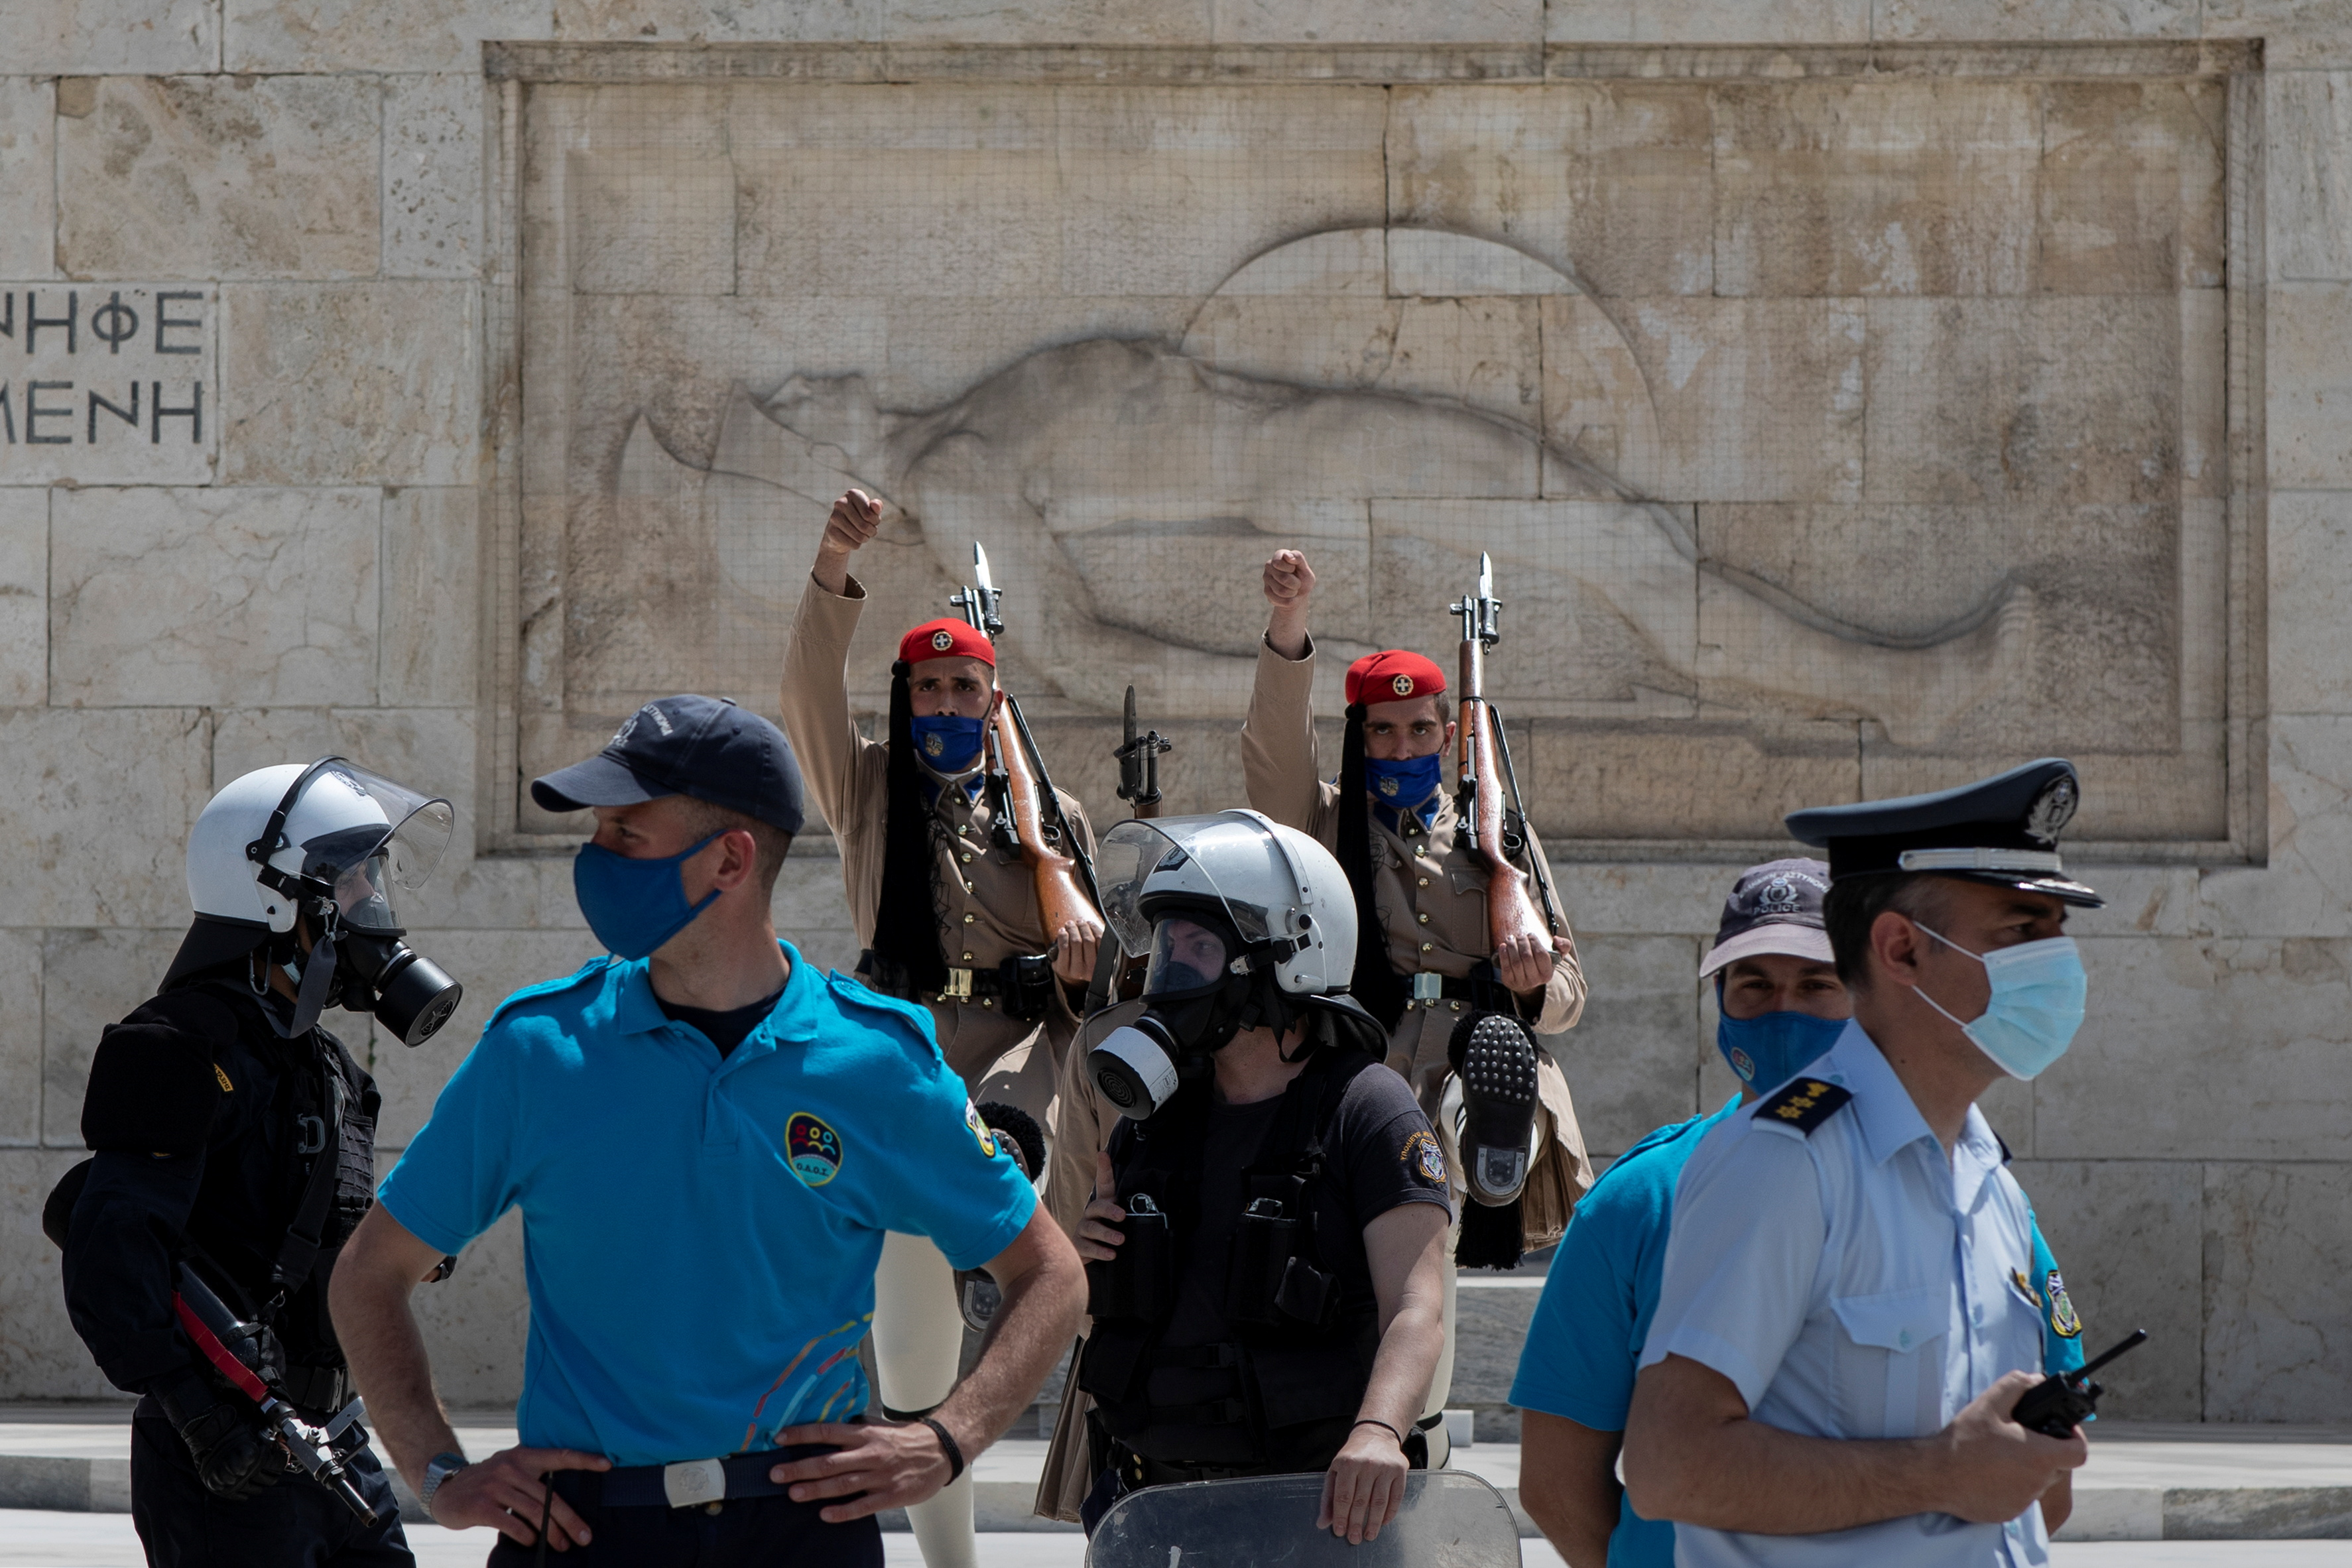 Greek Presidential Guards perform their sentry duty as police officers stand guard, during a rally organised by the communist-affiliated trade union PAME commemorating May Day, in Athens, Greece, May 6, 2021. REUTERS/Alkis Konstantinidis